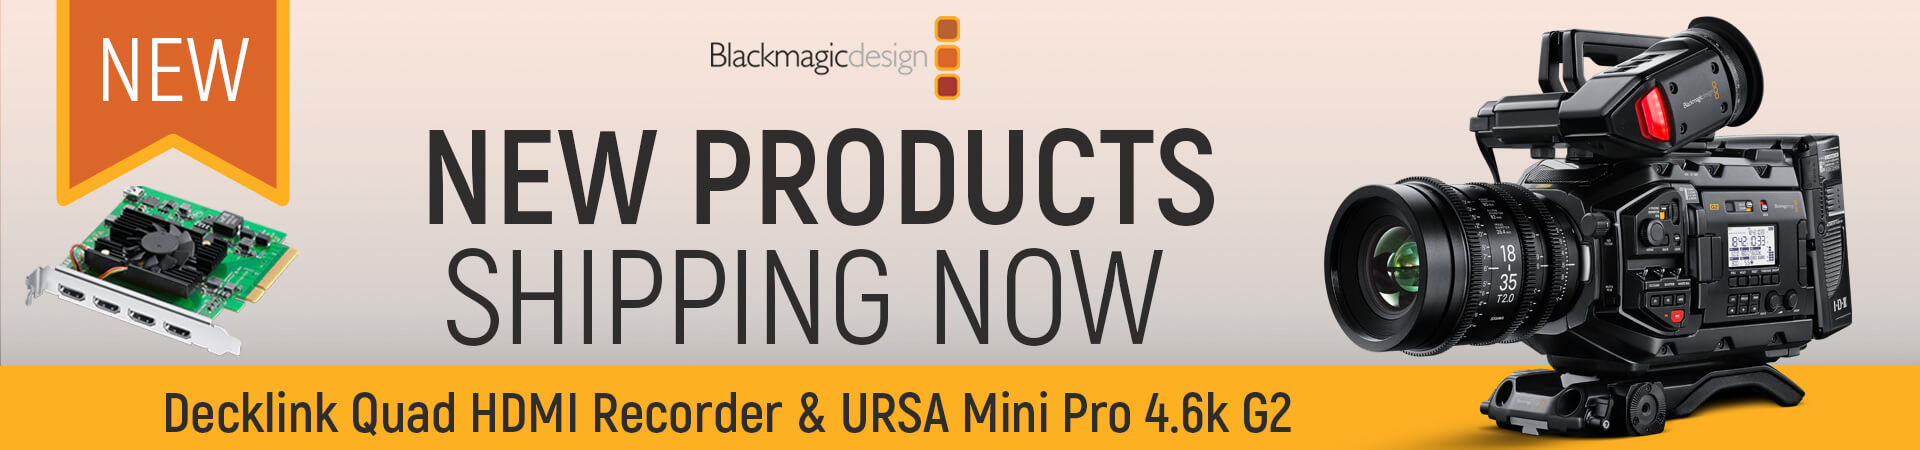 Blackmagic New Products